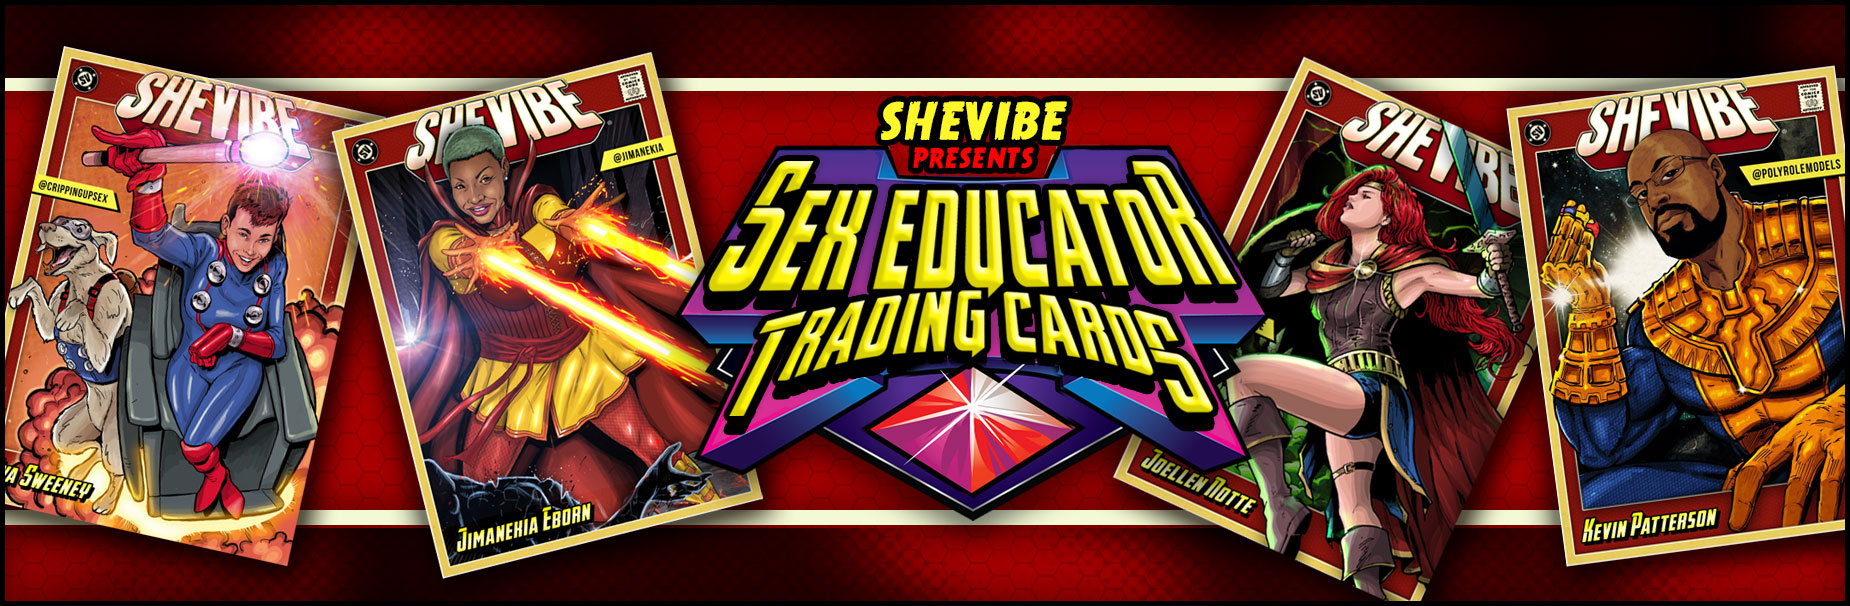 Sex Educator Trading Cards